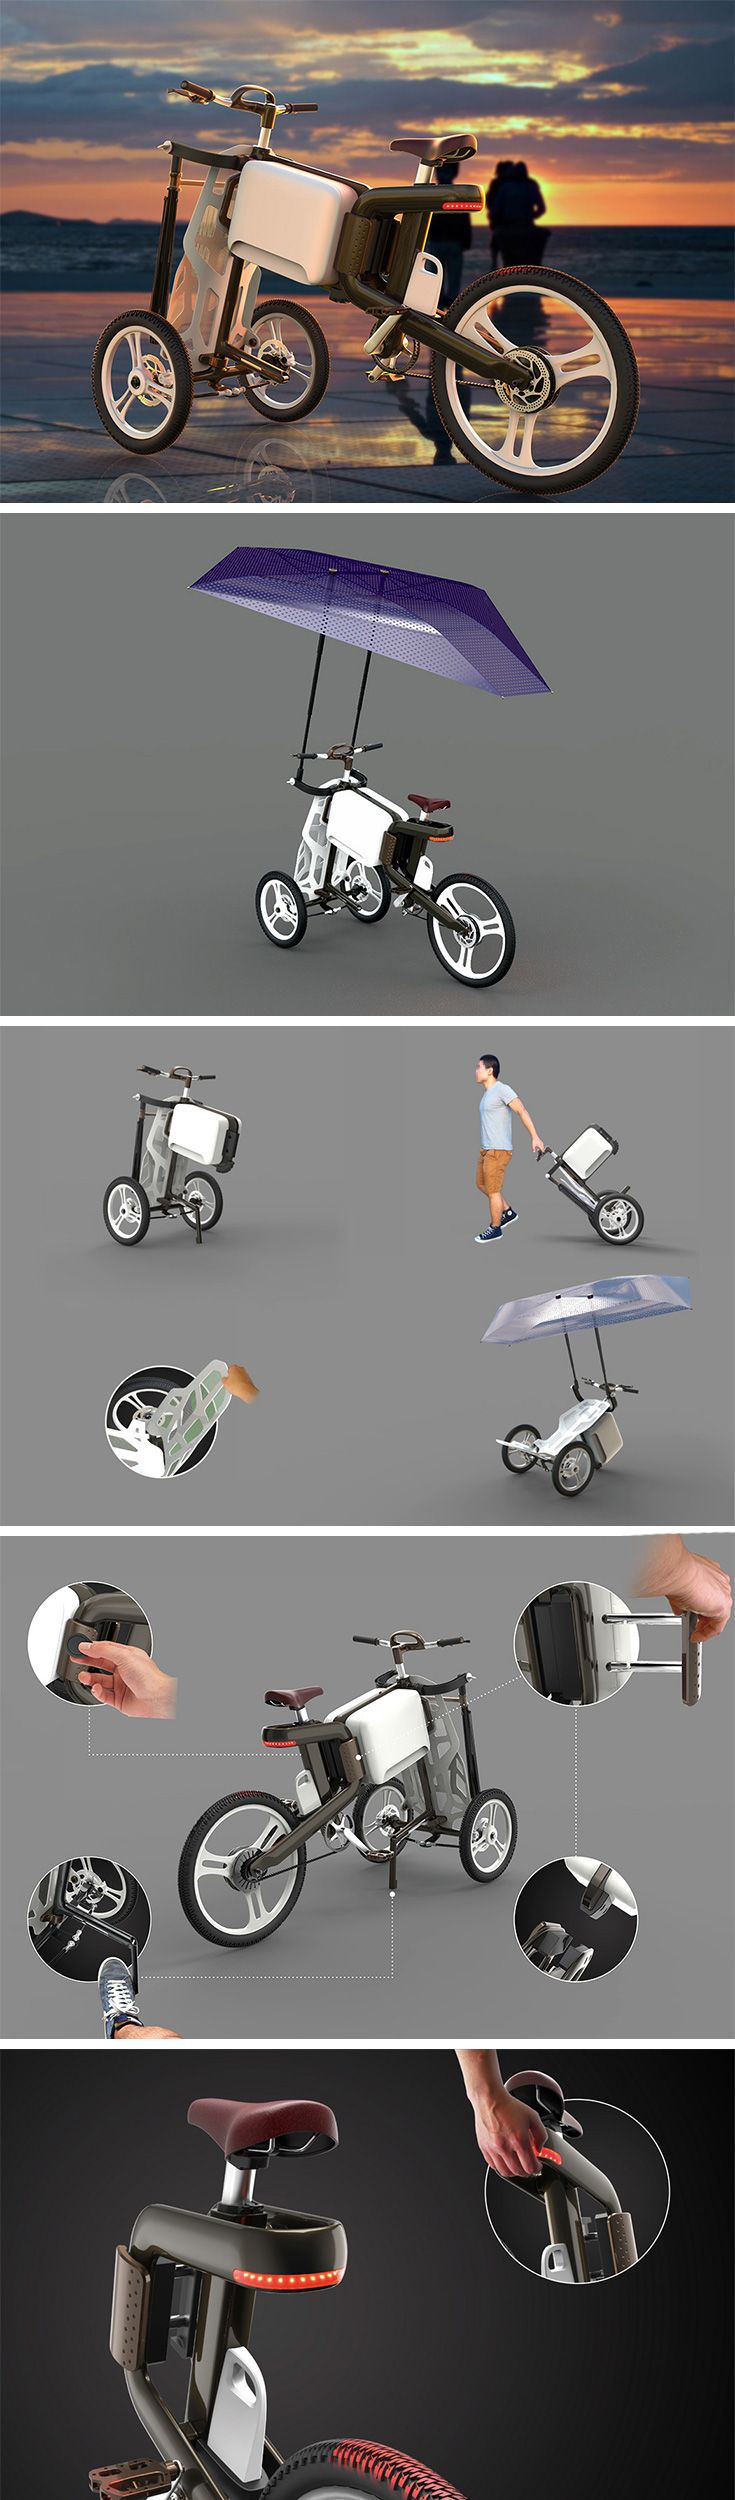 The Solectrike comes in two parts that become a tricycle when joined, allowing you to ride around the city in style, absorbing the view in a completely open way. The trike can be split back into two components, the bike, and the trolley. The bike can then be locked to any standard bike stand, while the tourist can wheel around the trolley that comes with its own compartment for your money, camera, passport and whatnot! So much better than taking an Uber to sightsee!